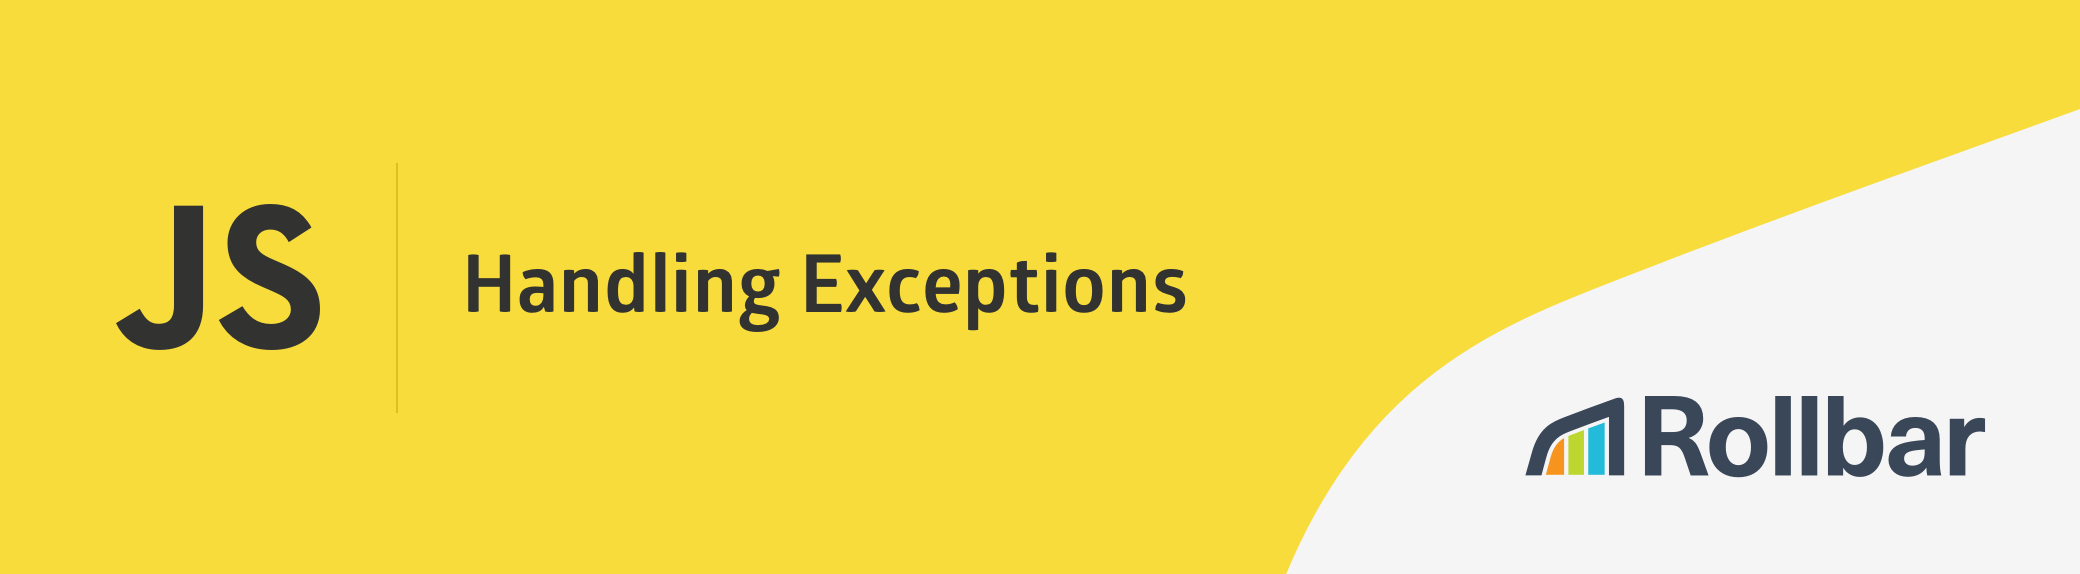 Javascript Handling Exceptions